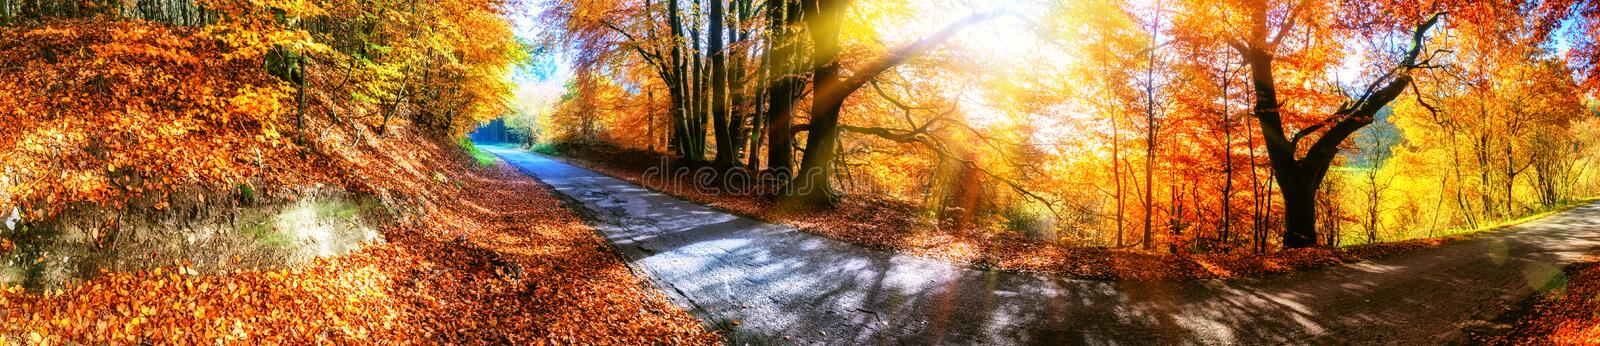 Panoramic autumn landscape with country road in orange tone. Nature background royalty free stock image